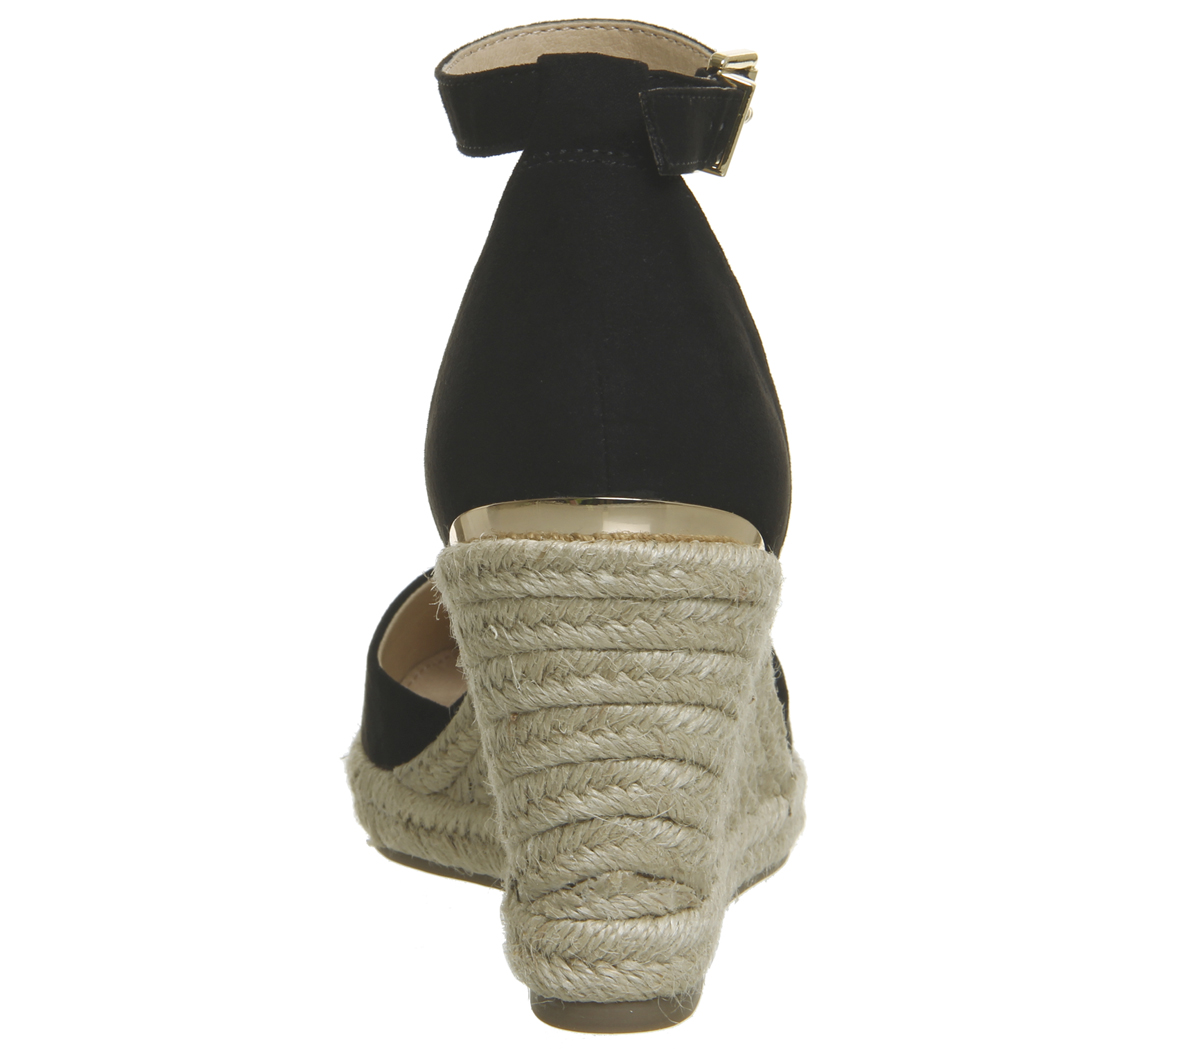 eb6a5d02fe0 Womens Office Marsha Closed Toe Espadrille Wedges Black With Gold ...